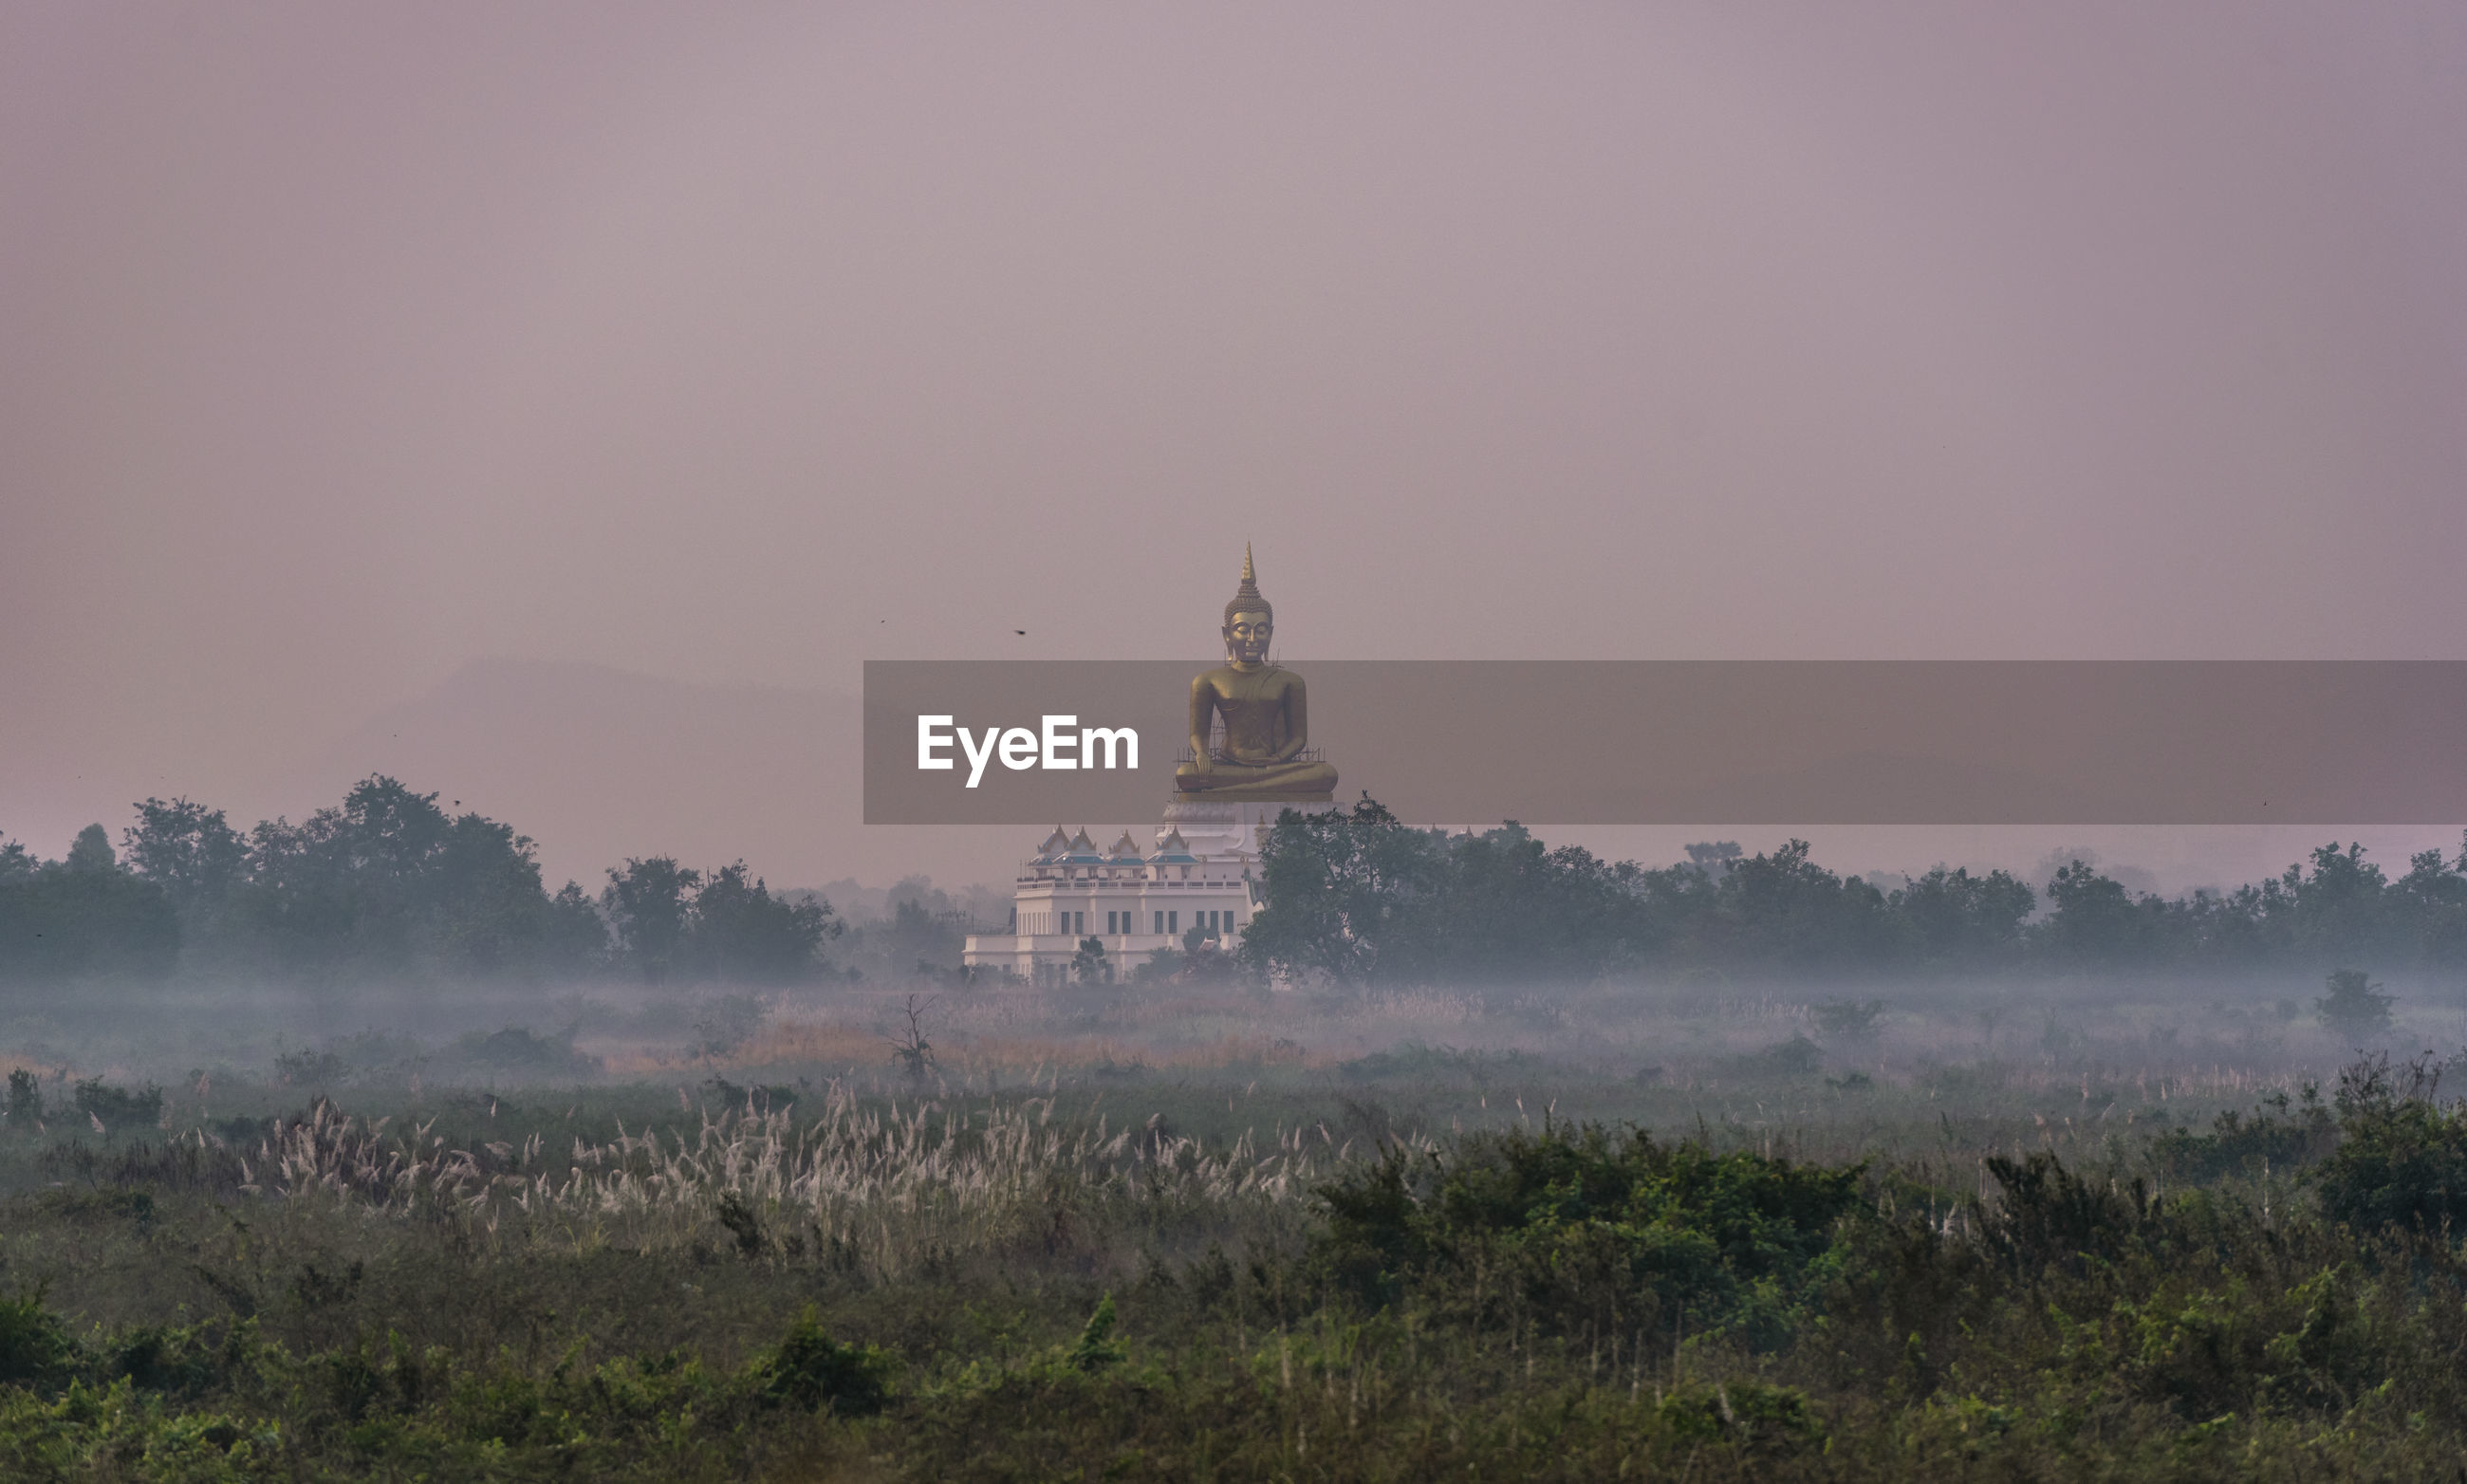 View of building against sky during foggy weather